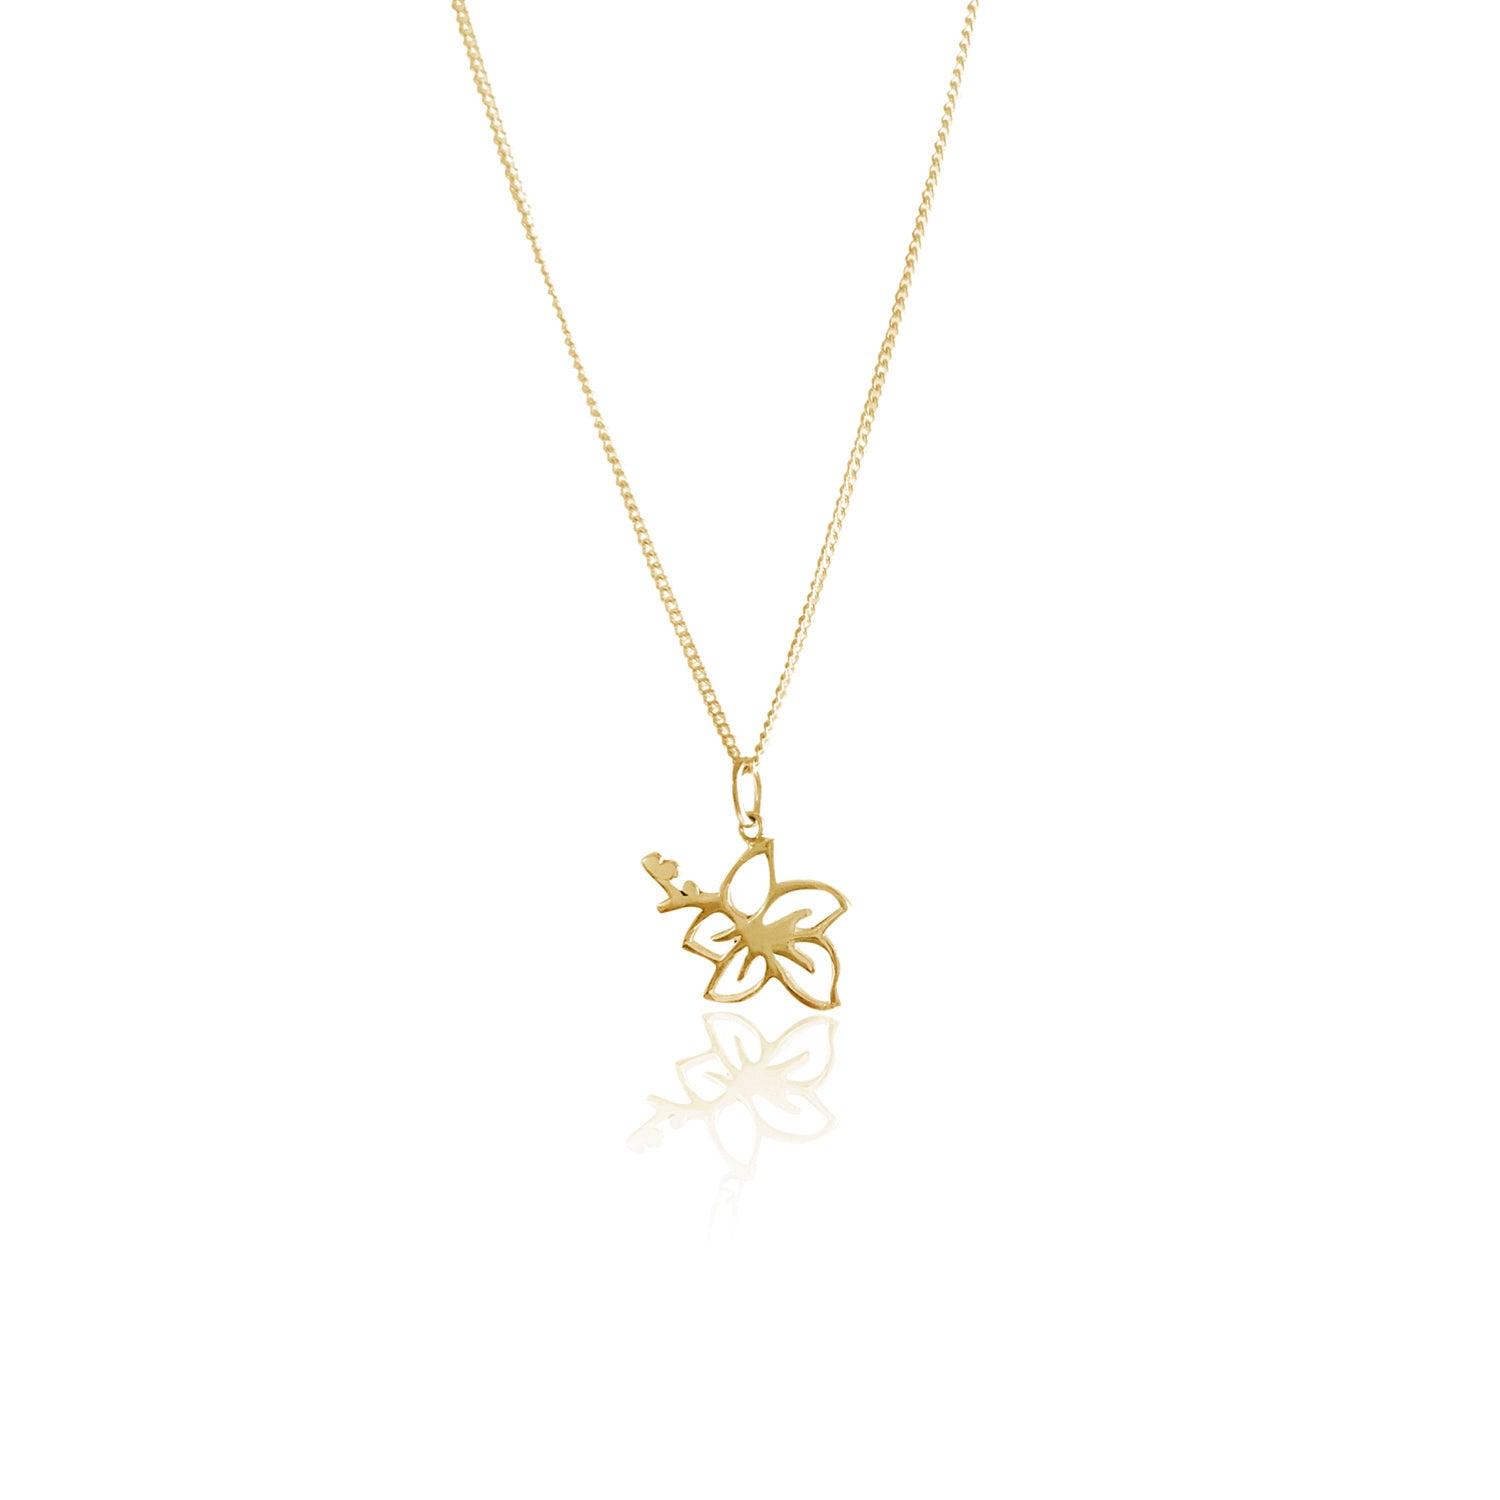 GOLDFISH KISS x LA LUNA ROSE HIBISCUS FLOWER NECKLACE (Gold)